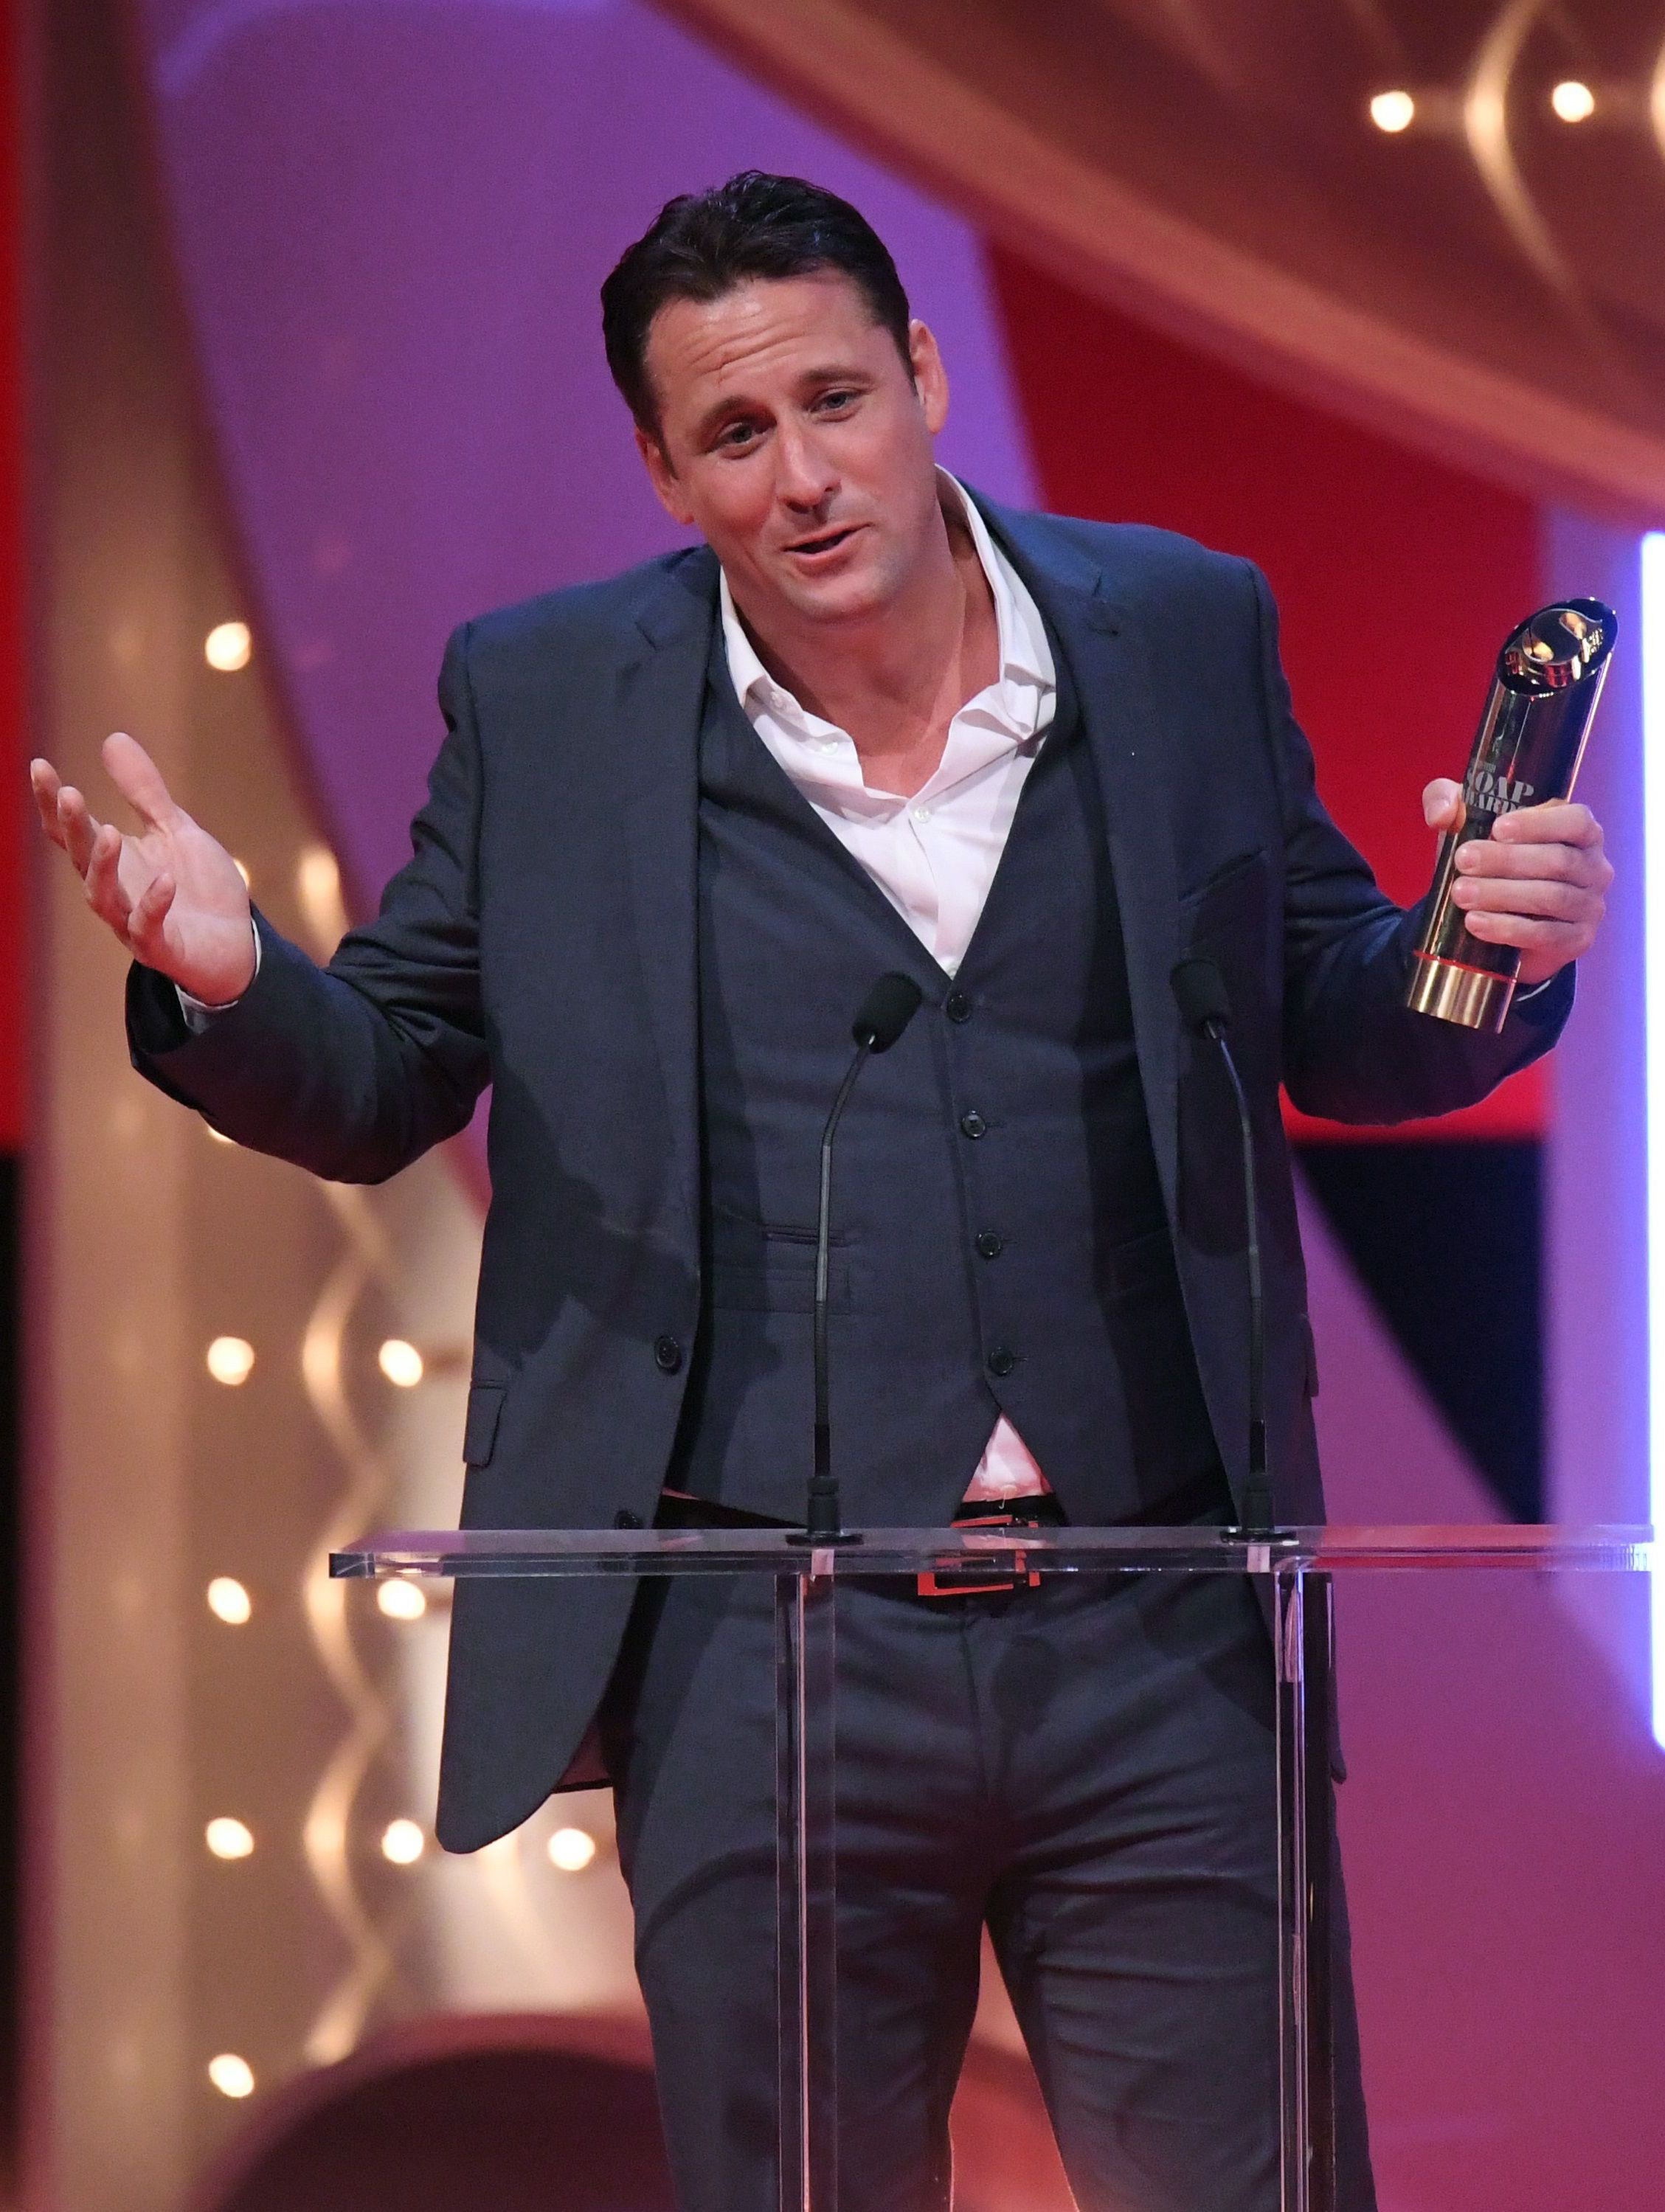 1496967113 soaps hollyoaks nick pickard soap awards 1 10 Things You Never Knew About Hollyoaks